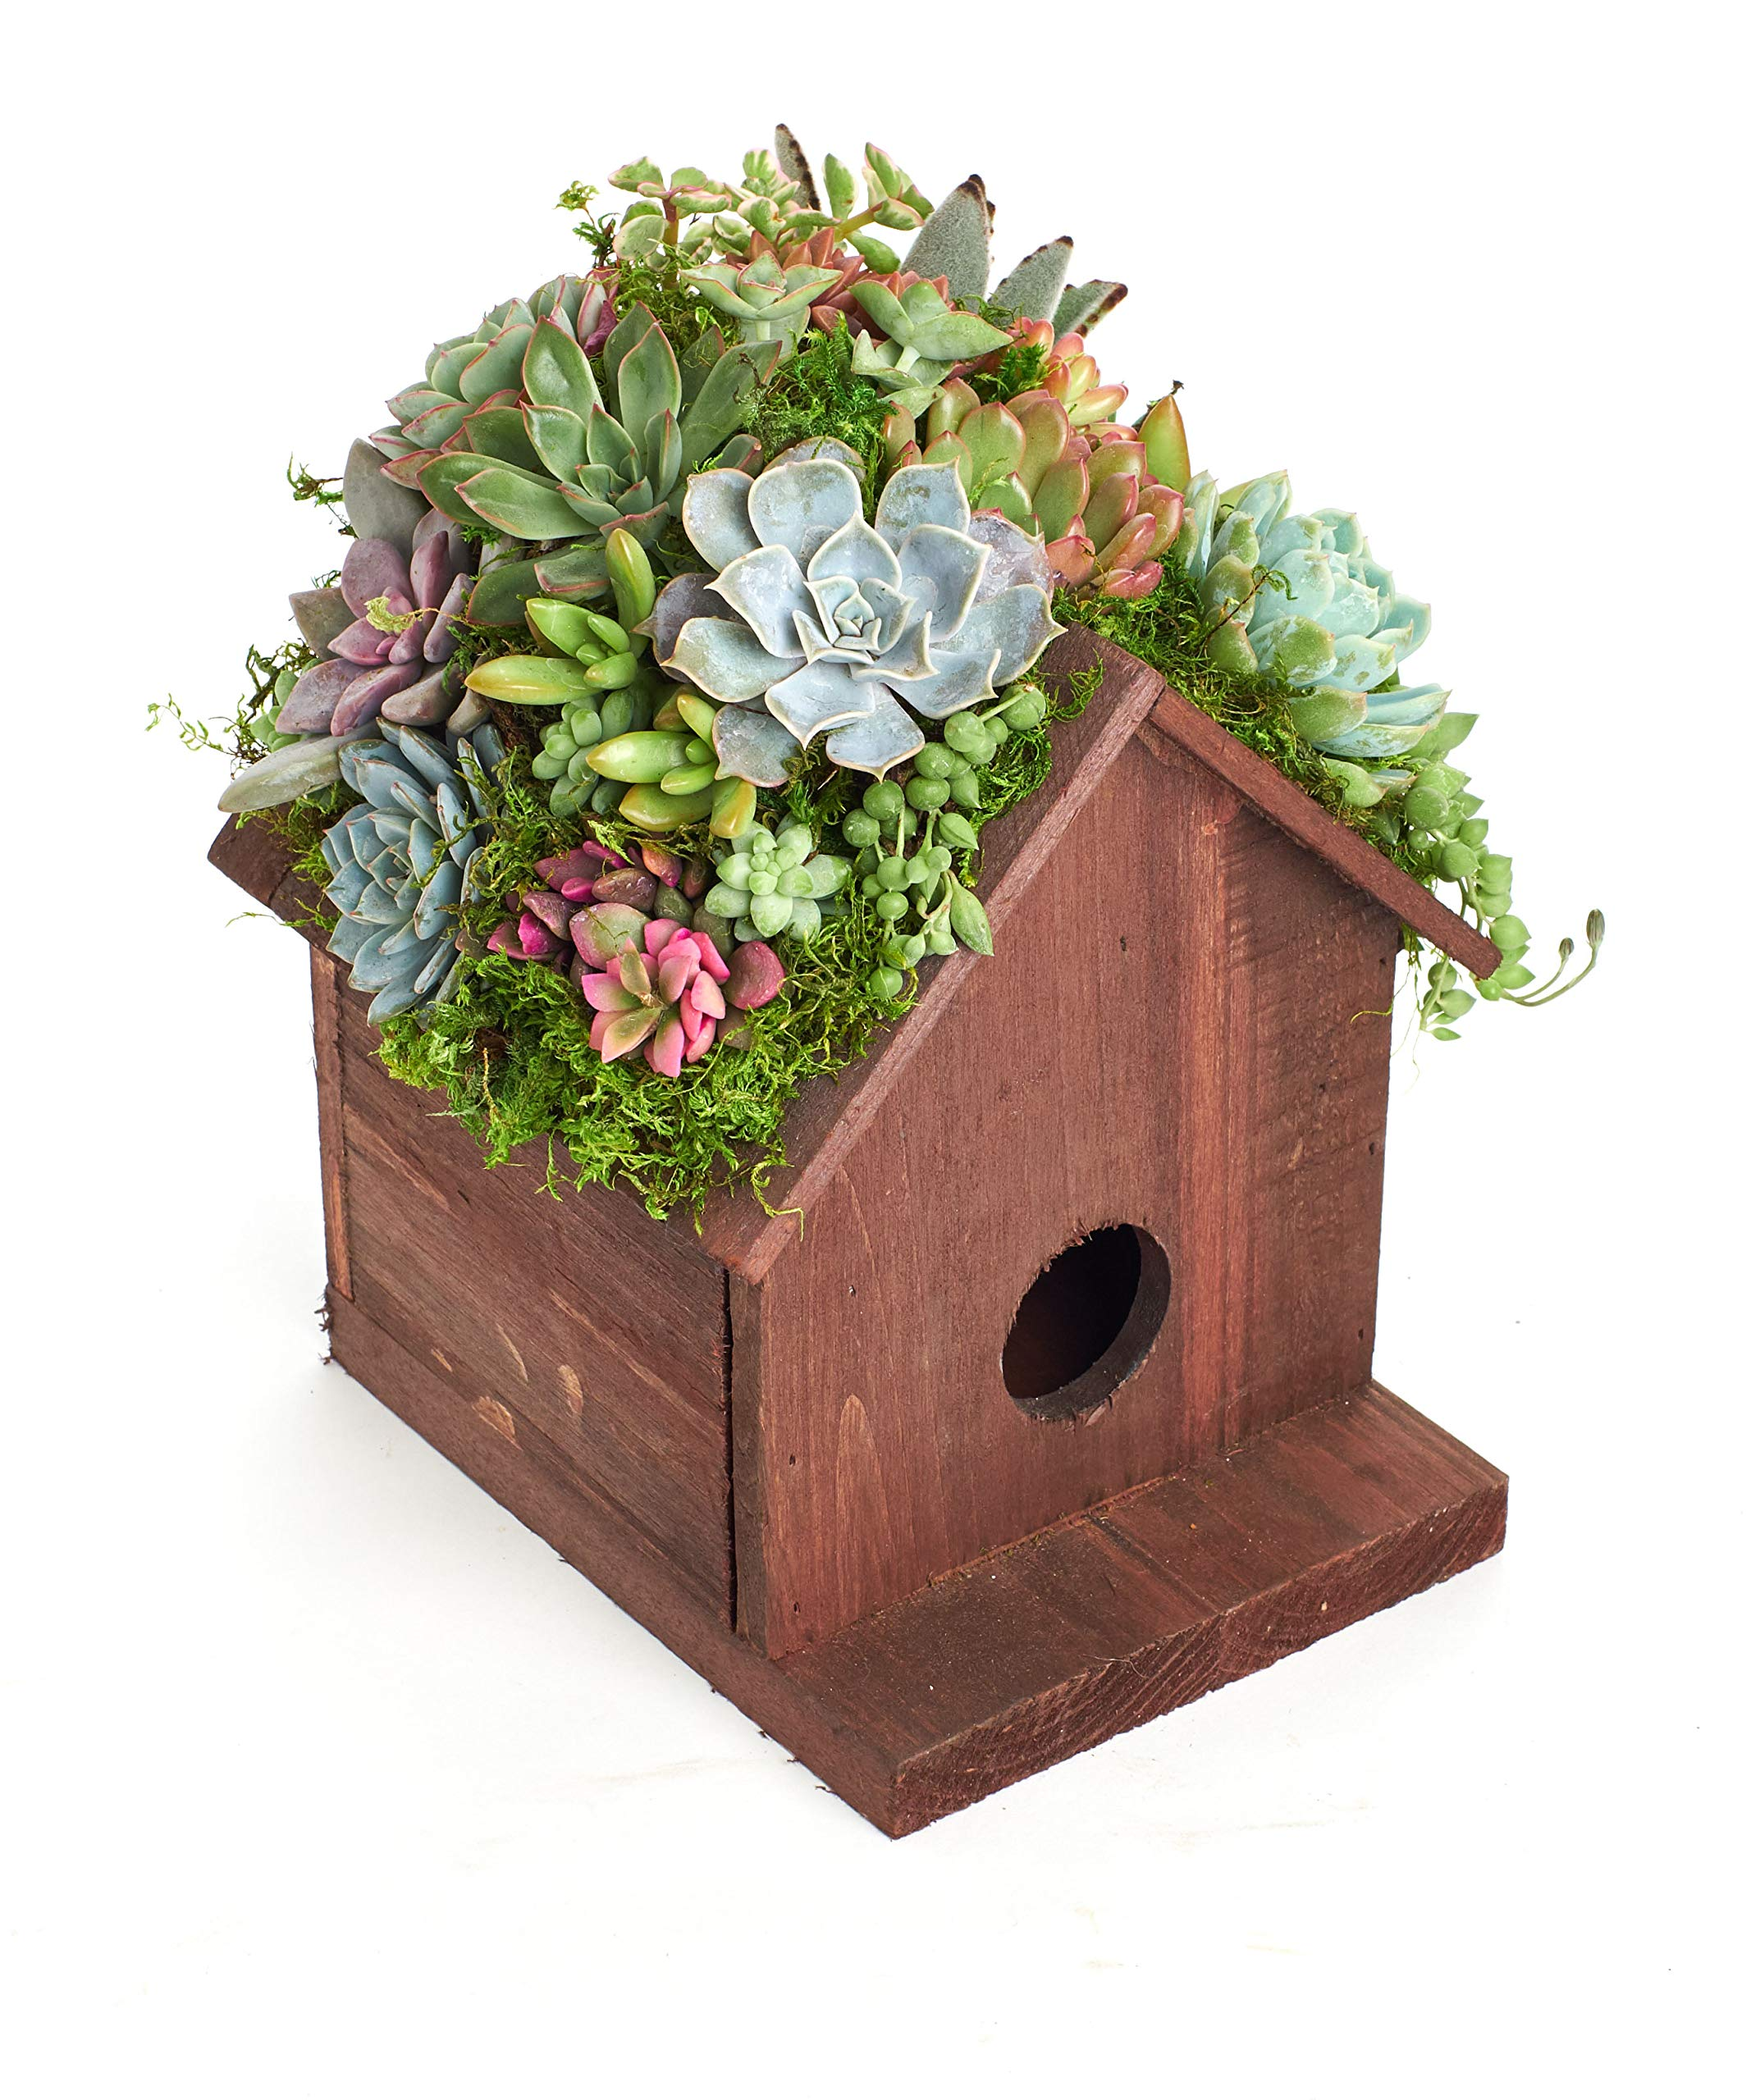 Shop Succulents BIRDHS-20-SUC-KIT Living Succulent Kit Birdhouse Planter by Shop Succulents (Image #4)